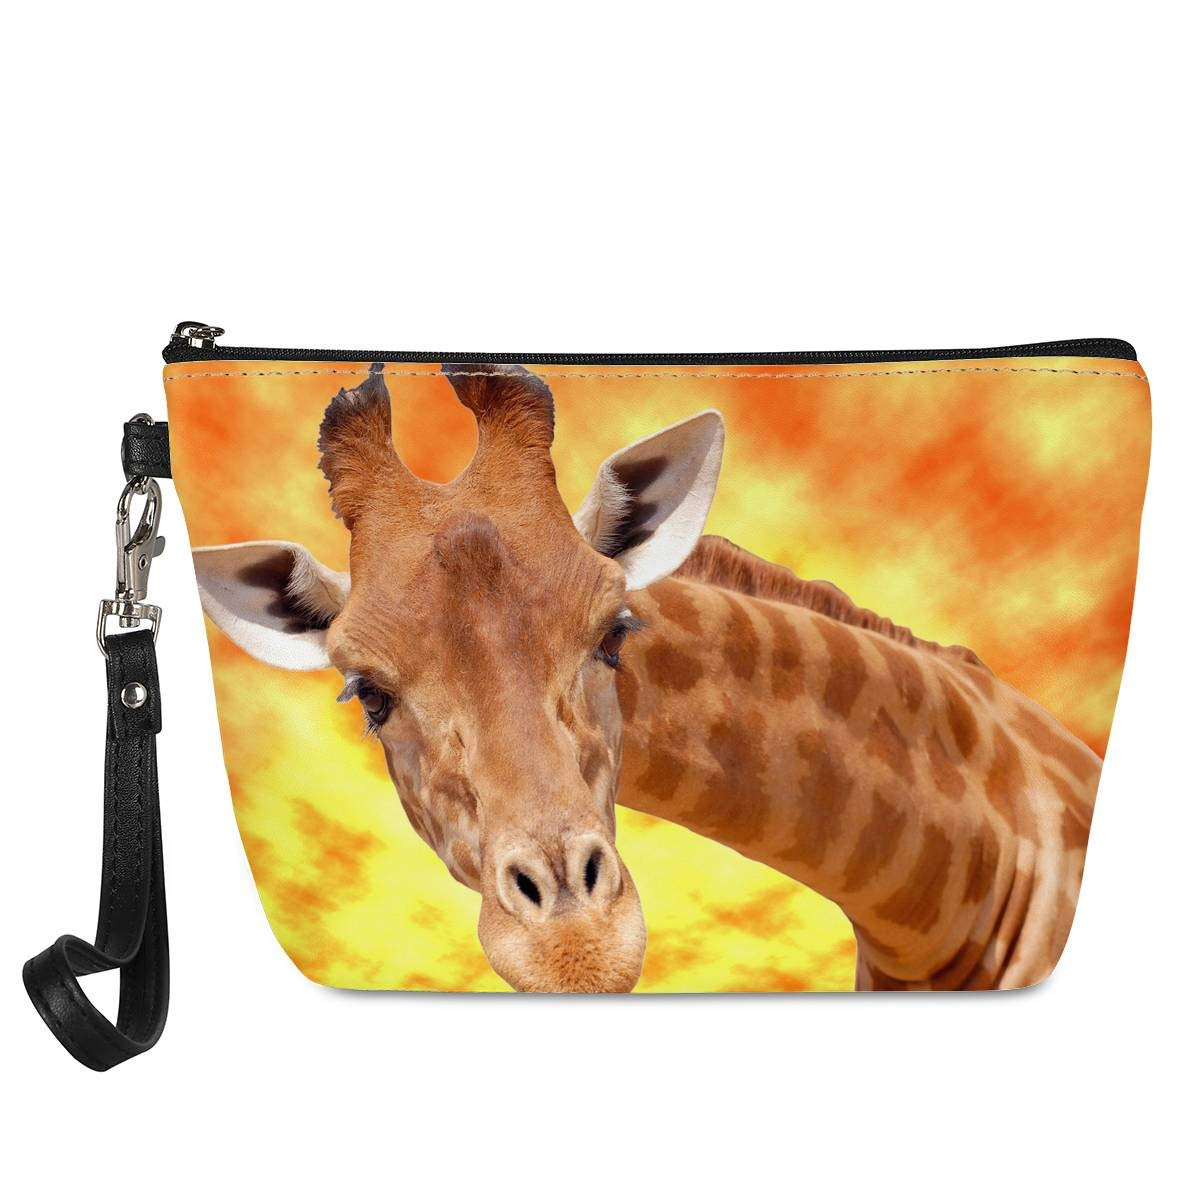 doginthehole Portable PU Leather Makeup Bag Waterproof Cosmetic Toiletry Case Kit Giraffe Gifts for Women Adults